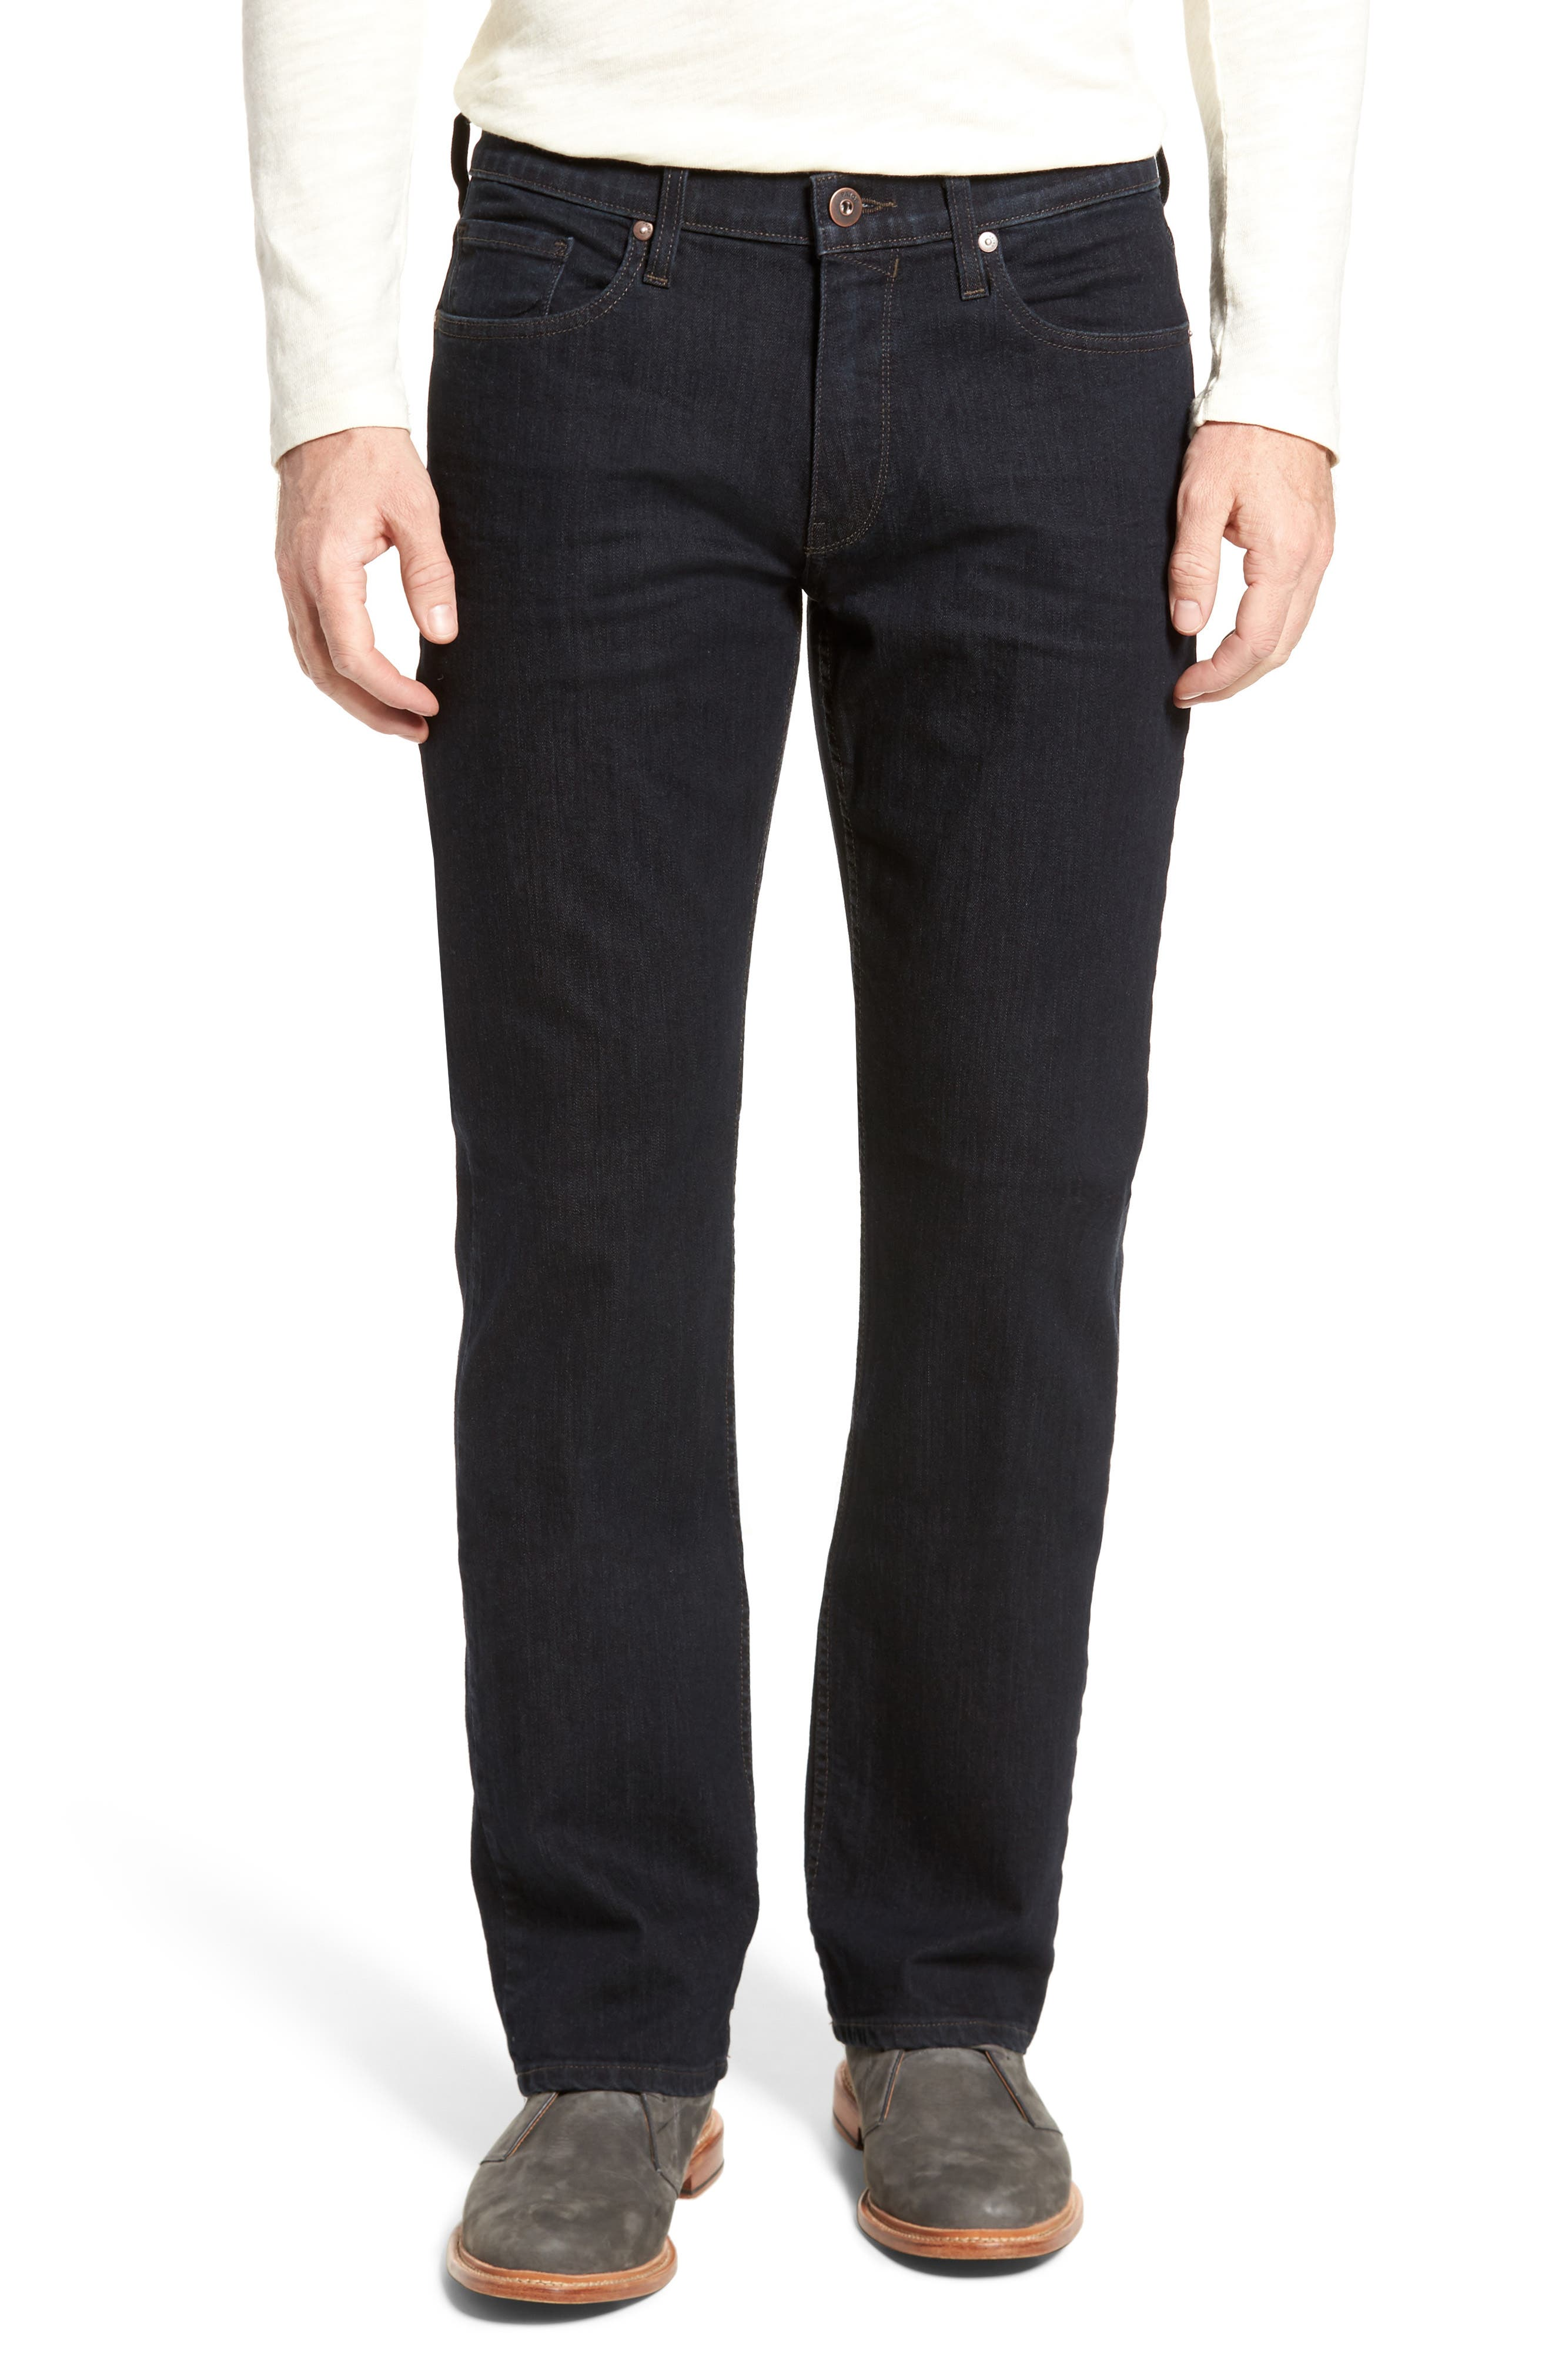 Doheny Relaxed Fit Jeans,                         Main,                         color, Tommy